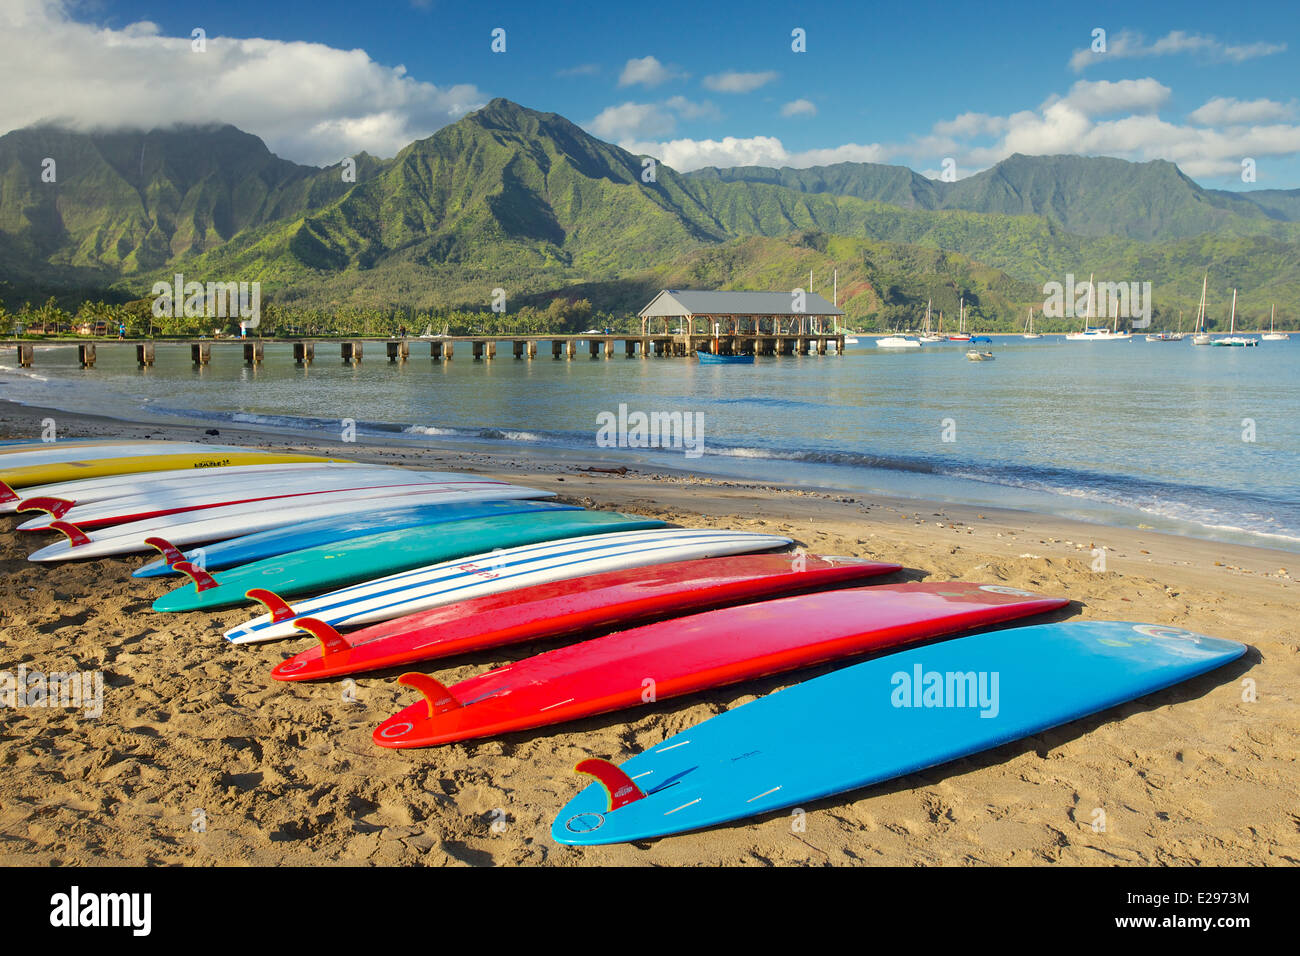 Surf boards on the beach at Hanalei Bay in Kauai, the Garden Isle of Hawaii - Stock Image